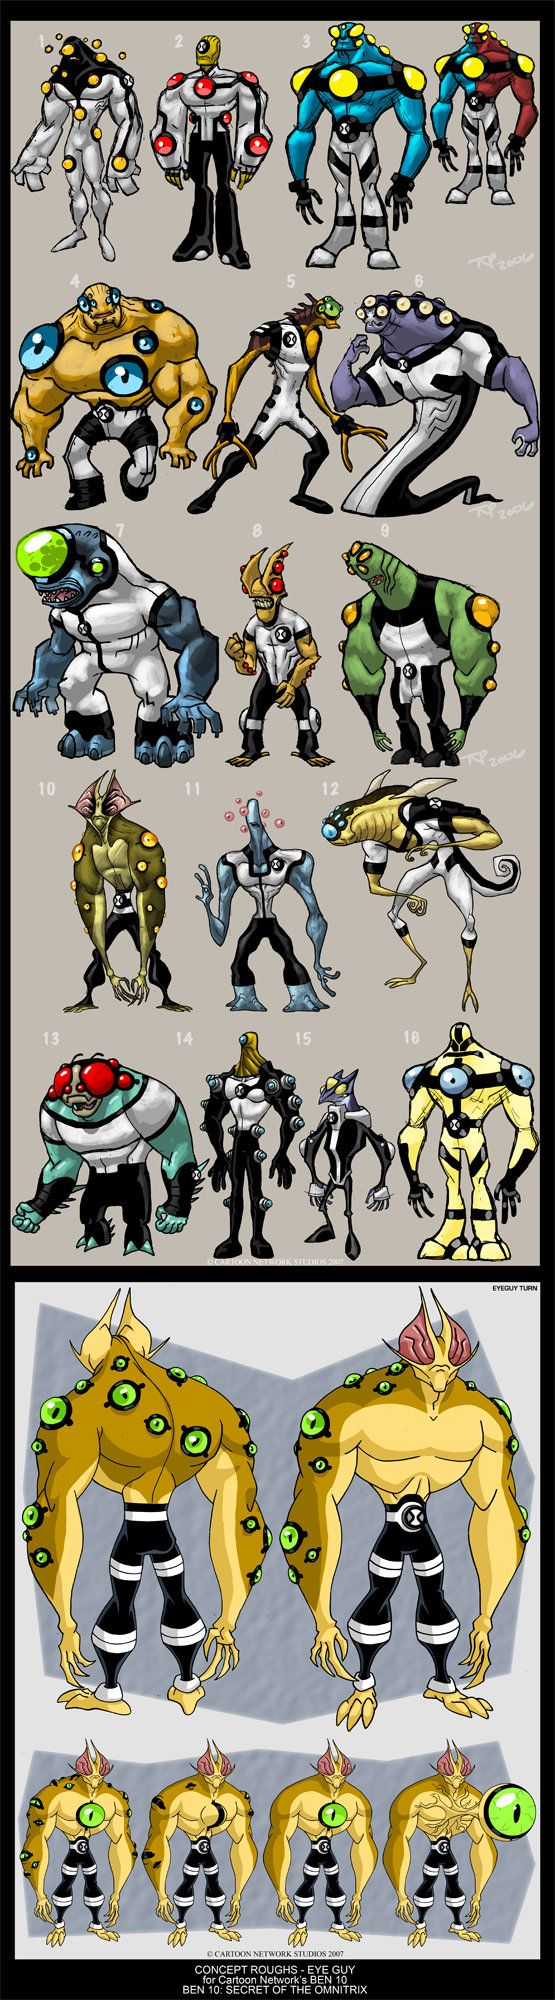 Here is some of the work that I did while developing the character EYE GUY for the Cartoon Network Studios program Ben 10, the DTV BEN 10: SECRET OF THE OMNITRIX. Many possiblities were generated f...